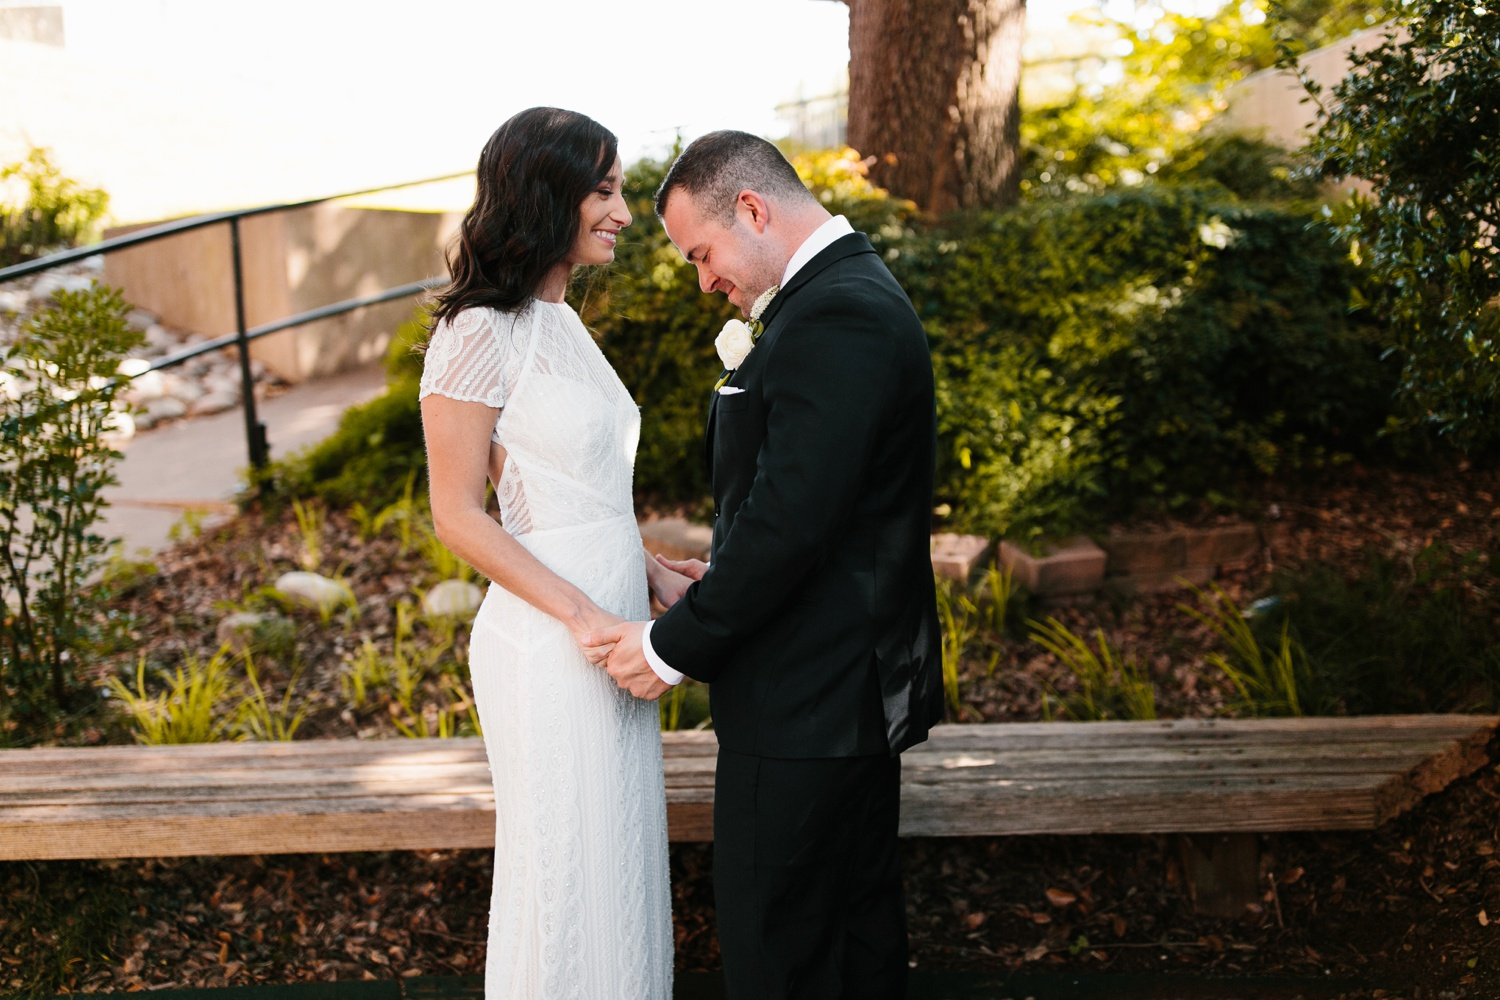 Kadee + Tyler | a raw, emotional wedding at the Filter Building on White Rock Lake in Dallas, TX by North Texas Wedding Photographer, Rachel Meagan Photography 072